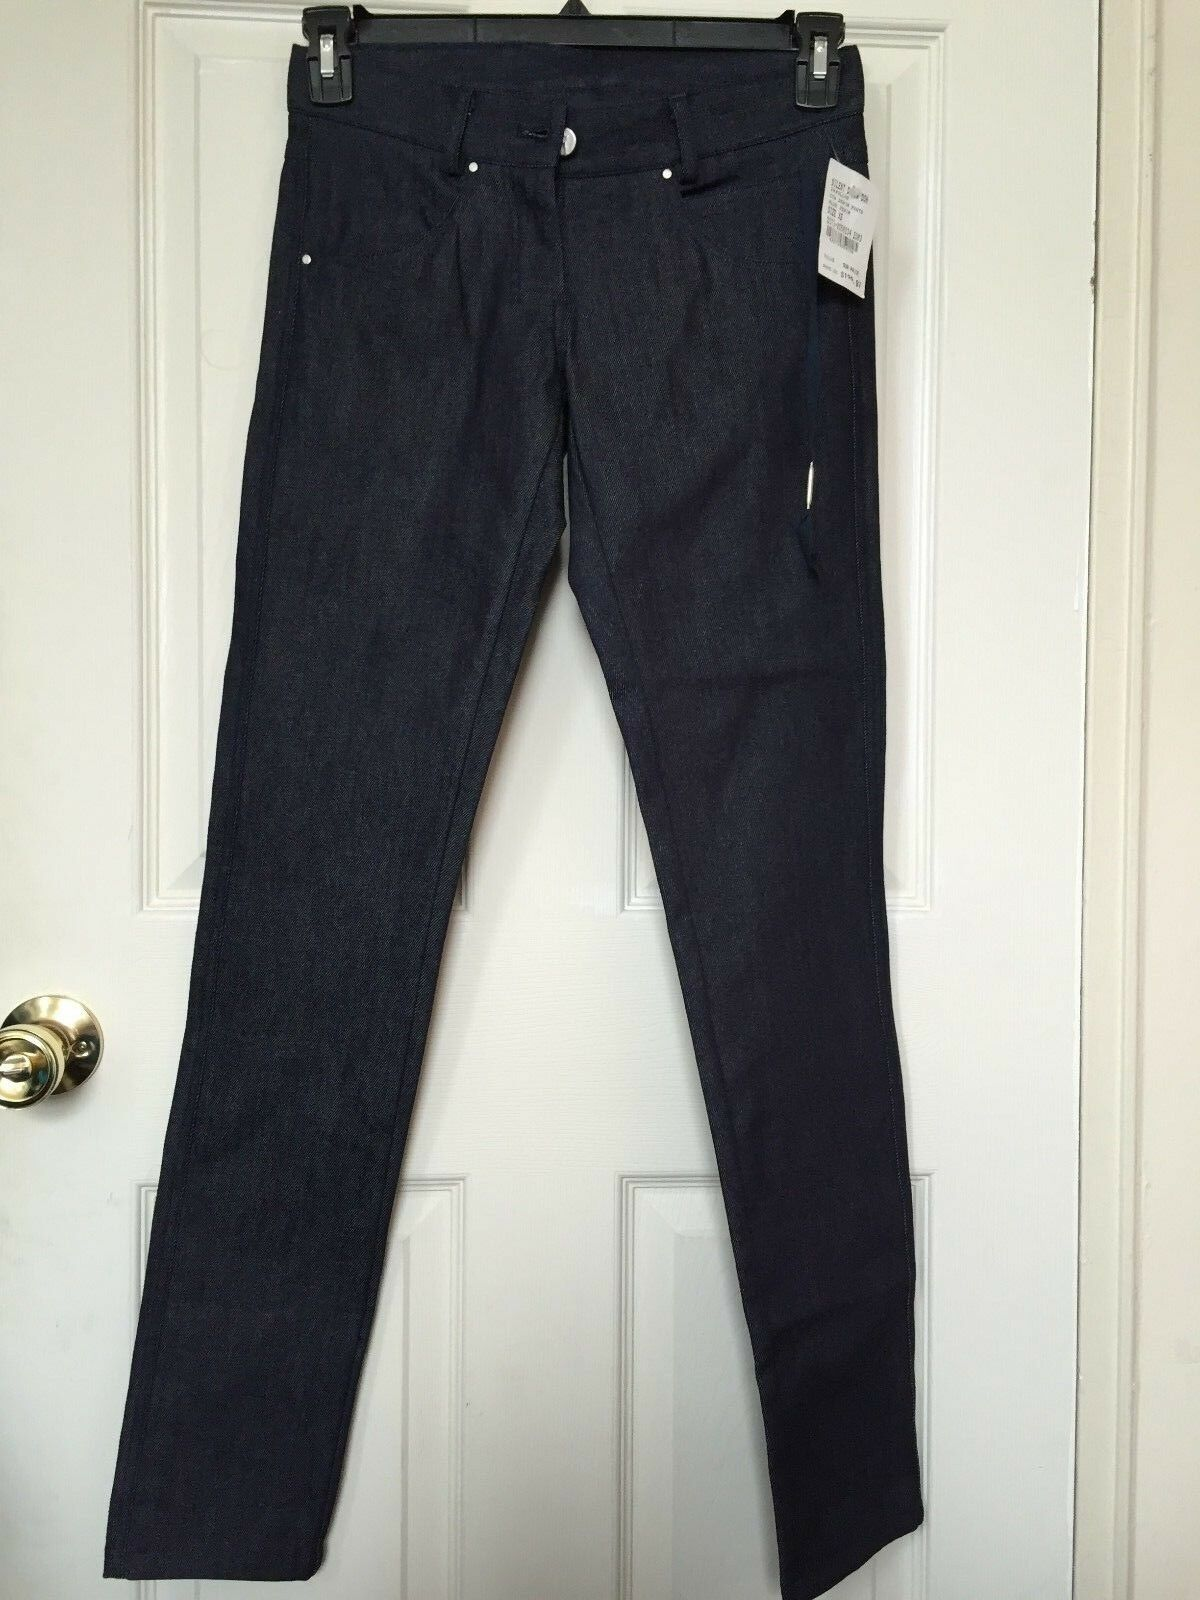 Authentic Silent Damir Doma bluee Denim Skinny Jeans XS Made  MSRP  NWT